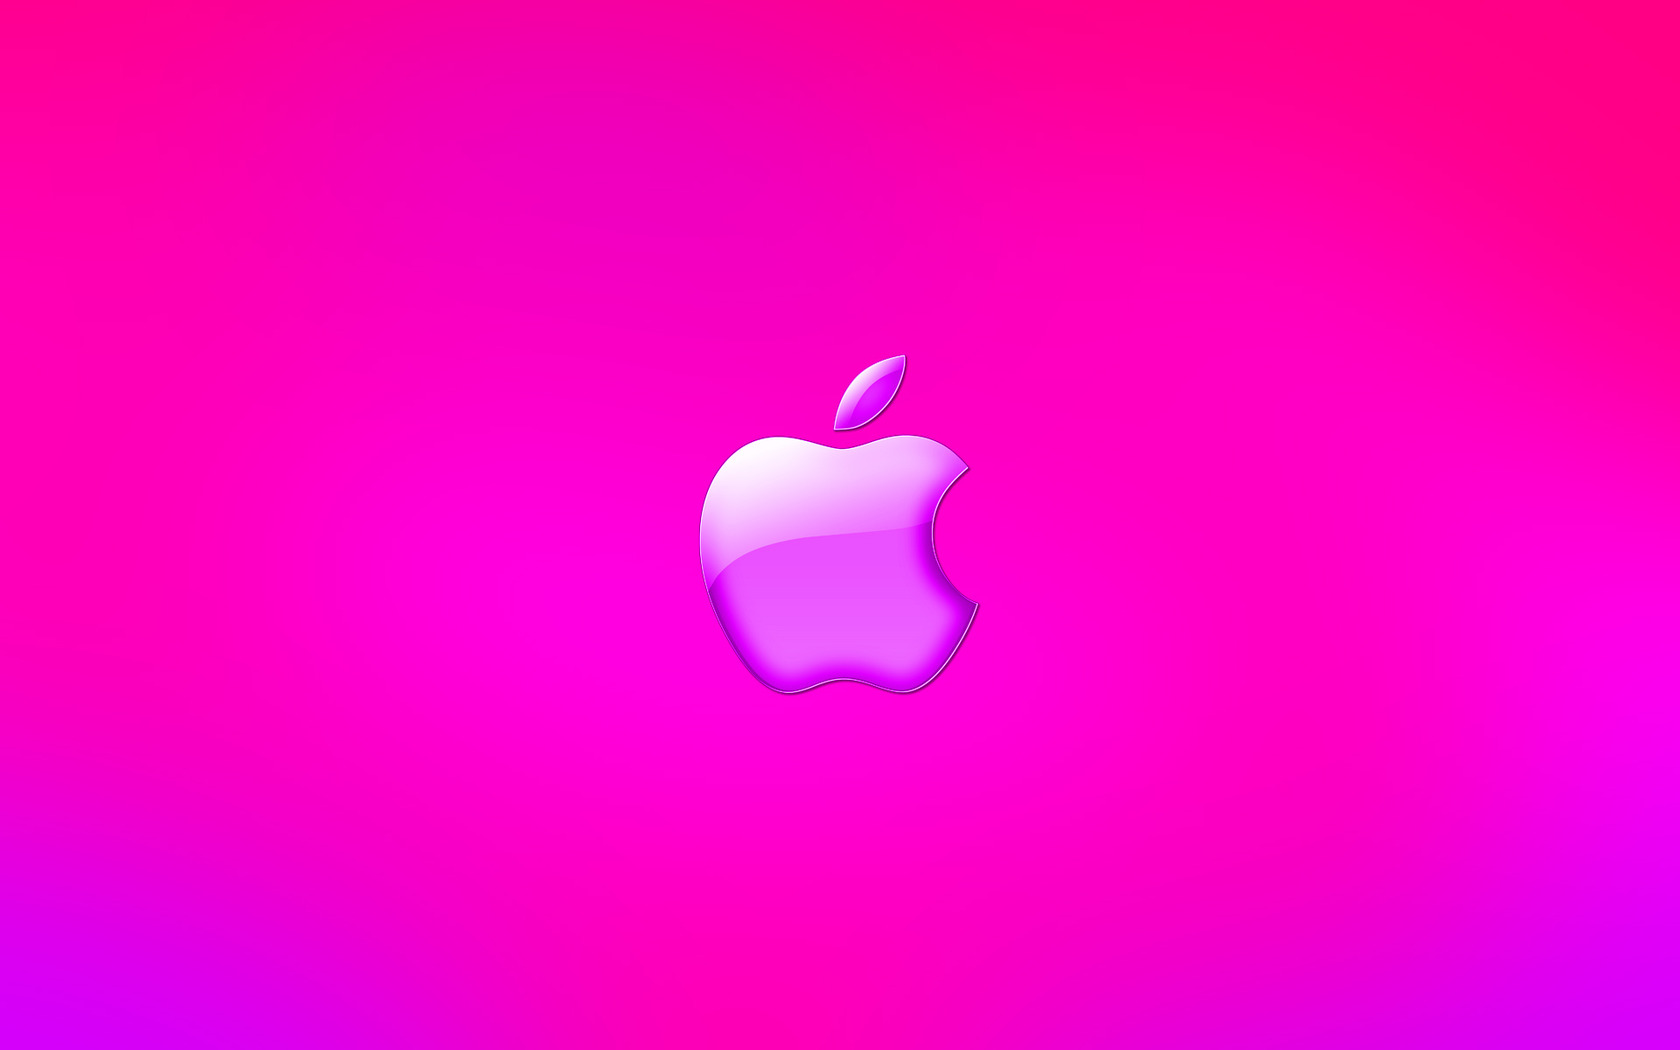 Pink Apple logo wallpaper 4929 1680x1050